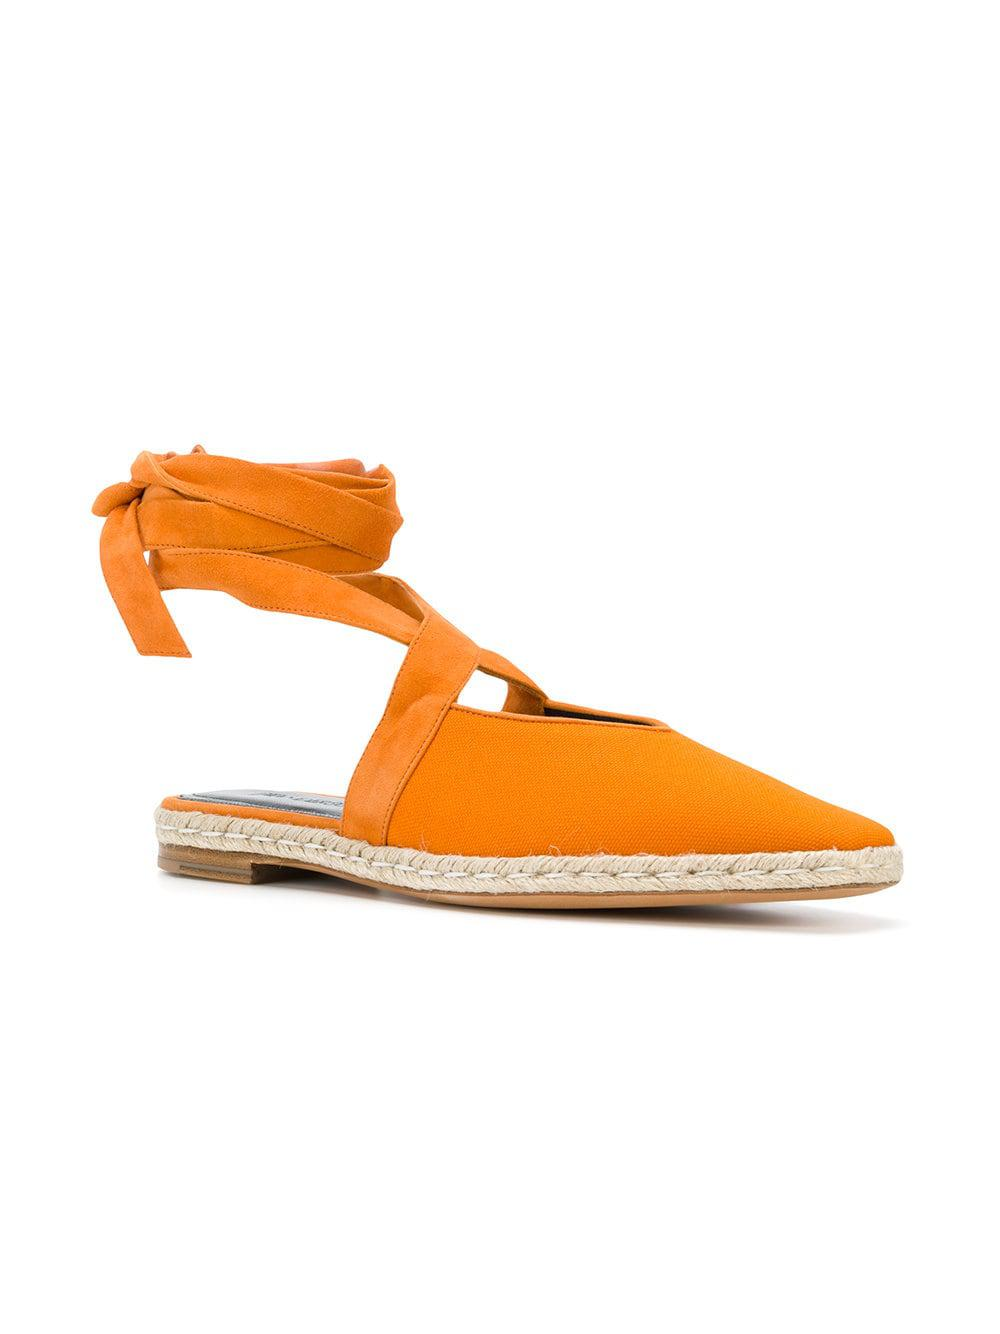 30306d8cc Lyst - JW Anderson Lace-up Espadrille Flats in Orange